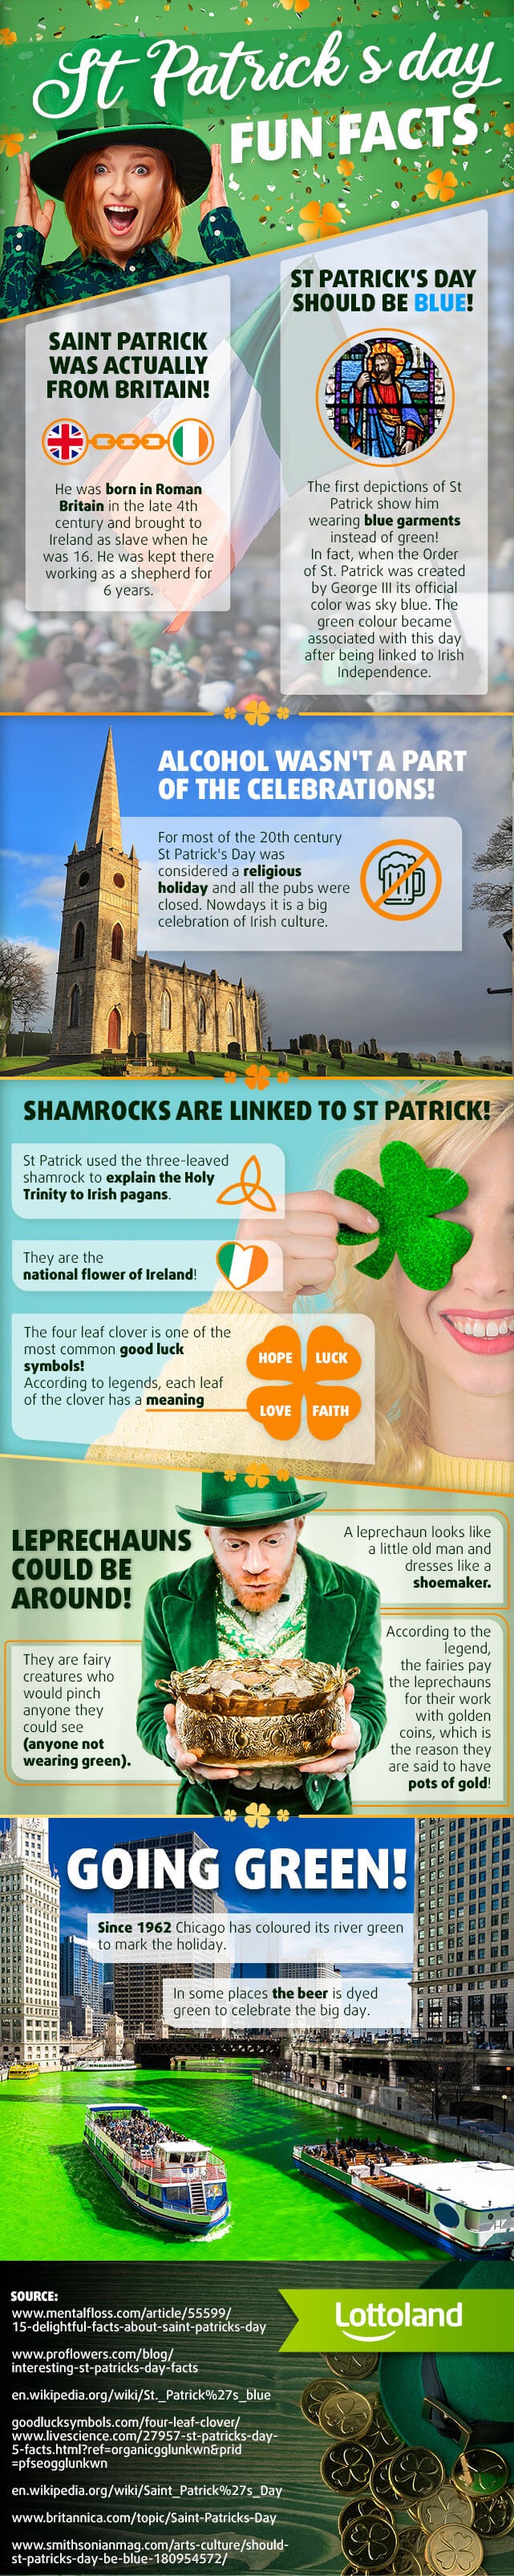 St Patrick's Day Celebrations Infographic